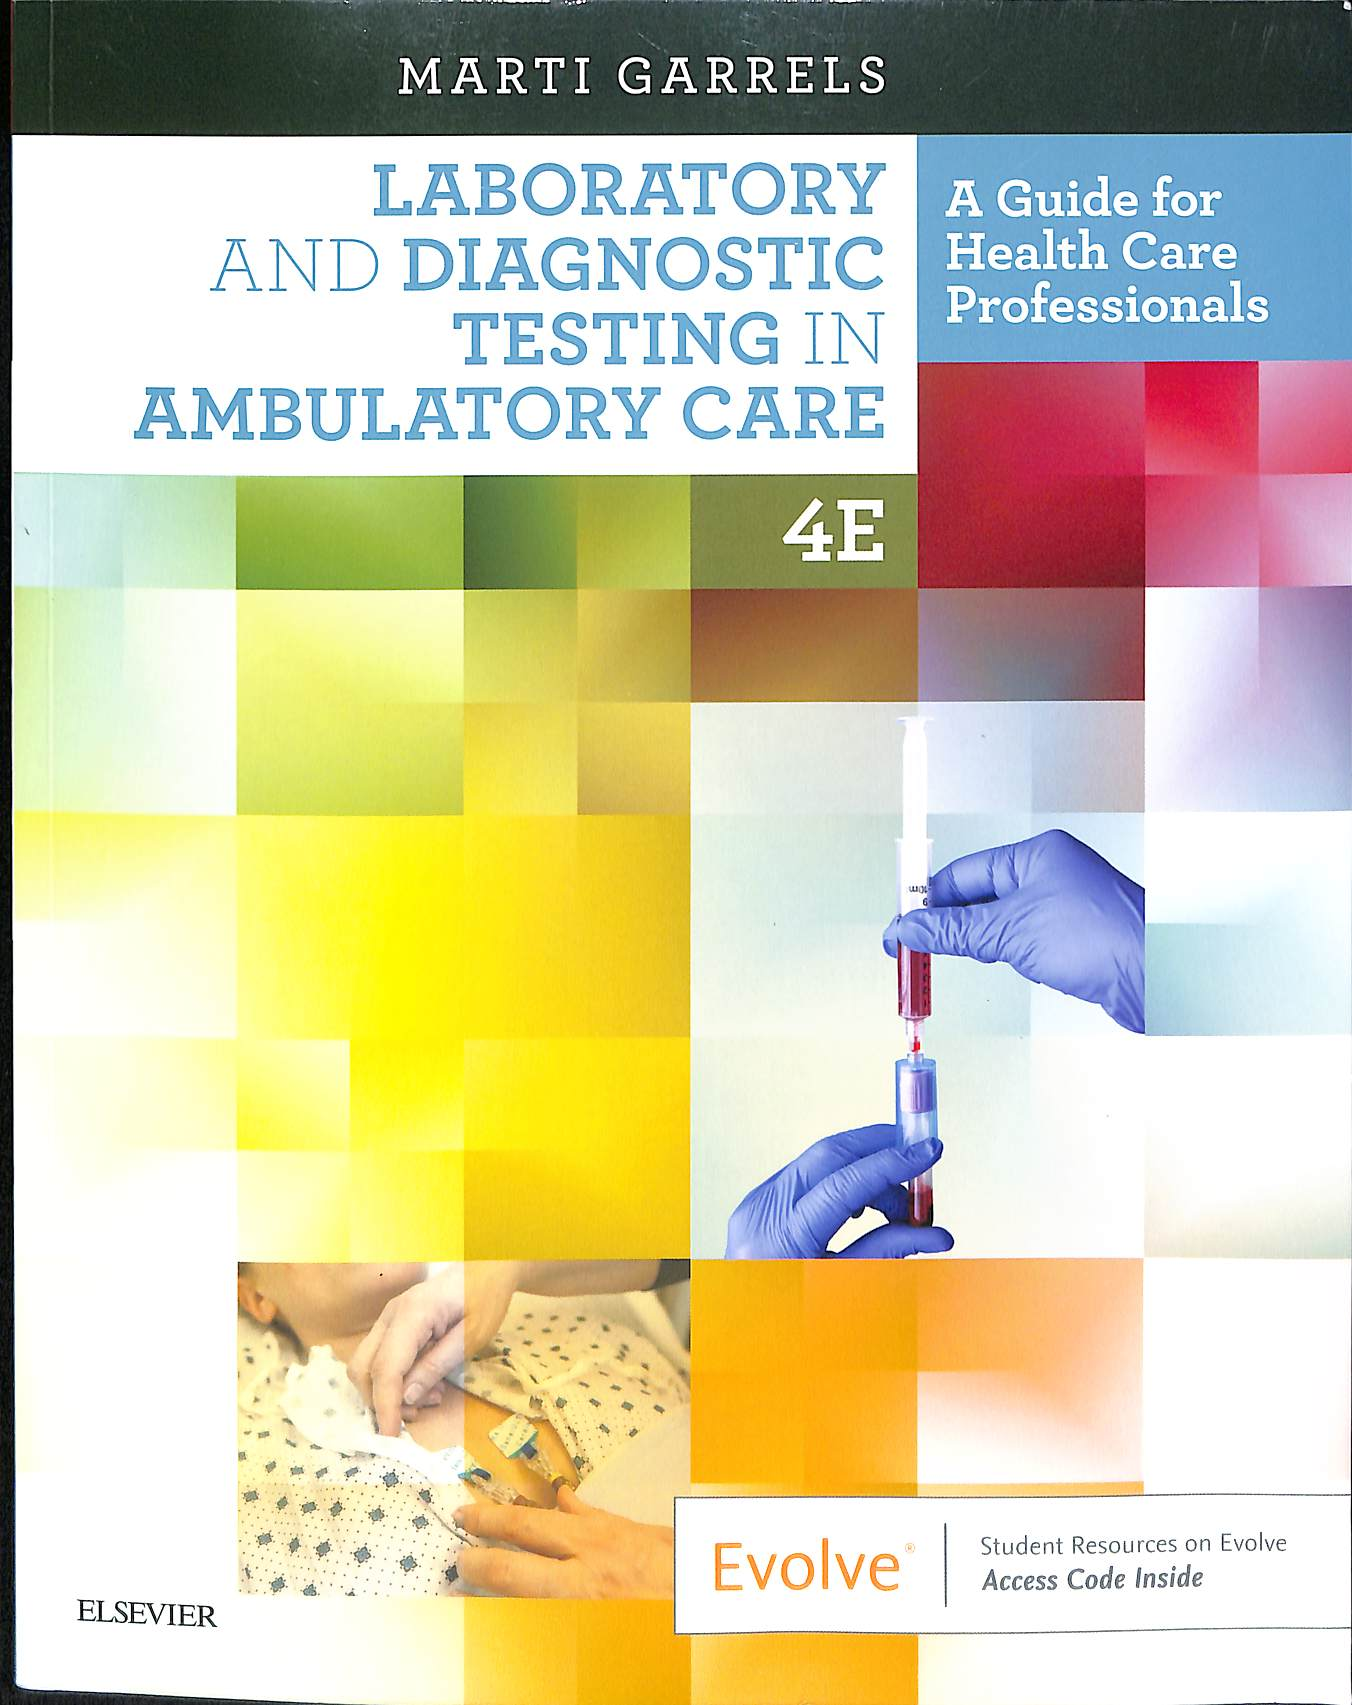 Laboratory and diagnostic testing in ambulatory care 4E a guide for health care profesionals